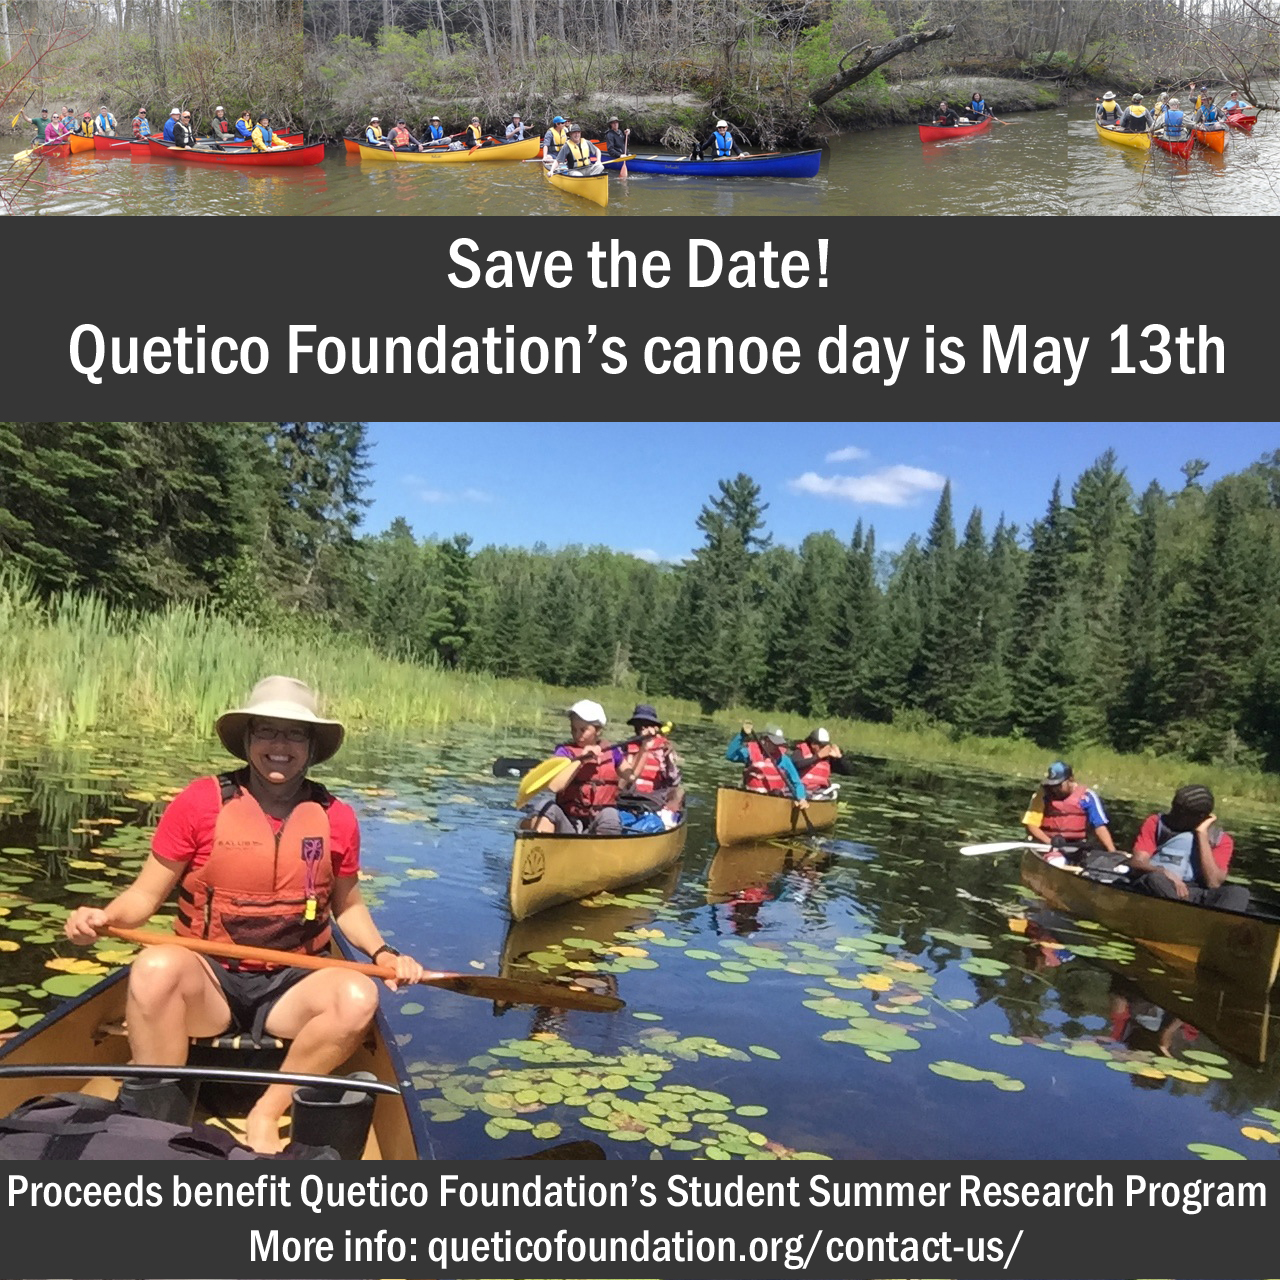 Save_the_Date_Quetico_Foundation_Canoe_Day_2017